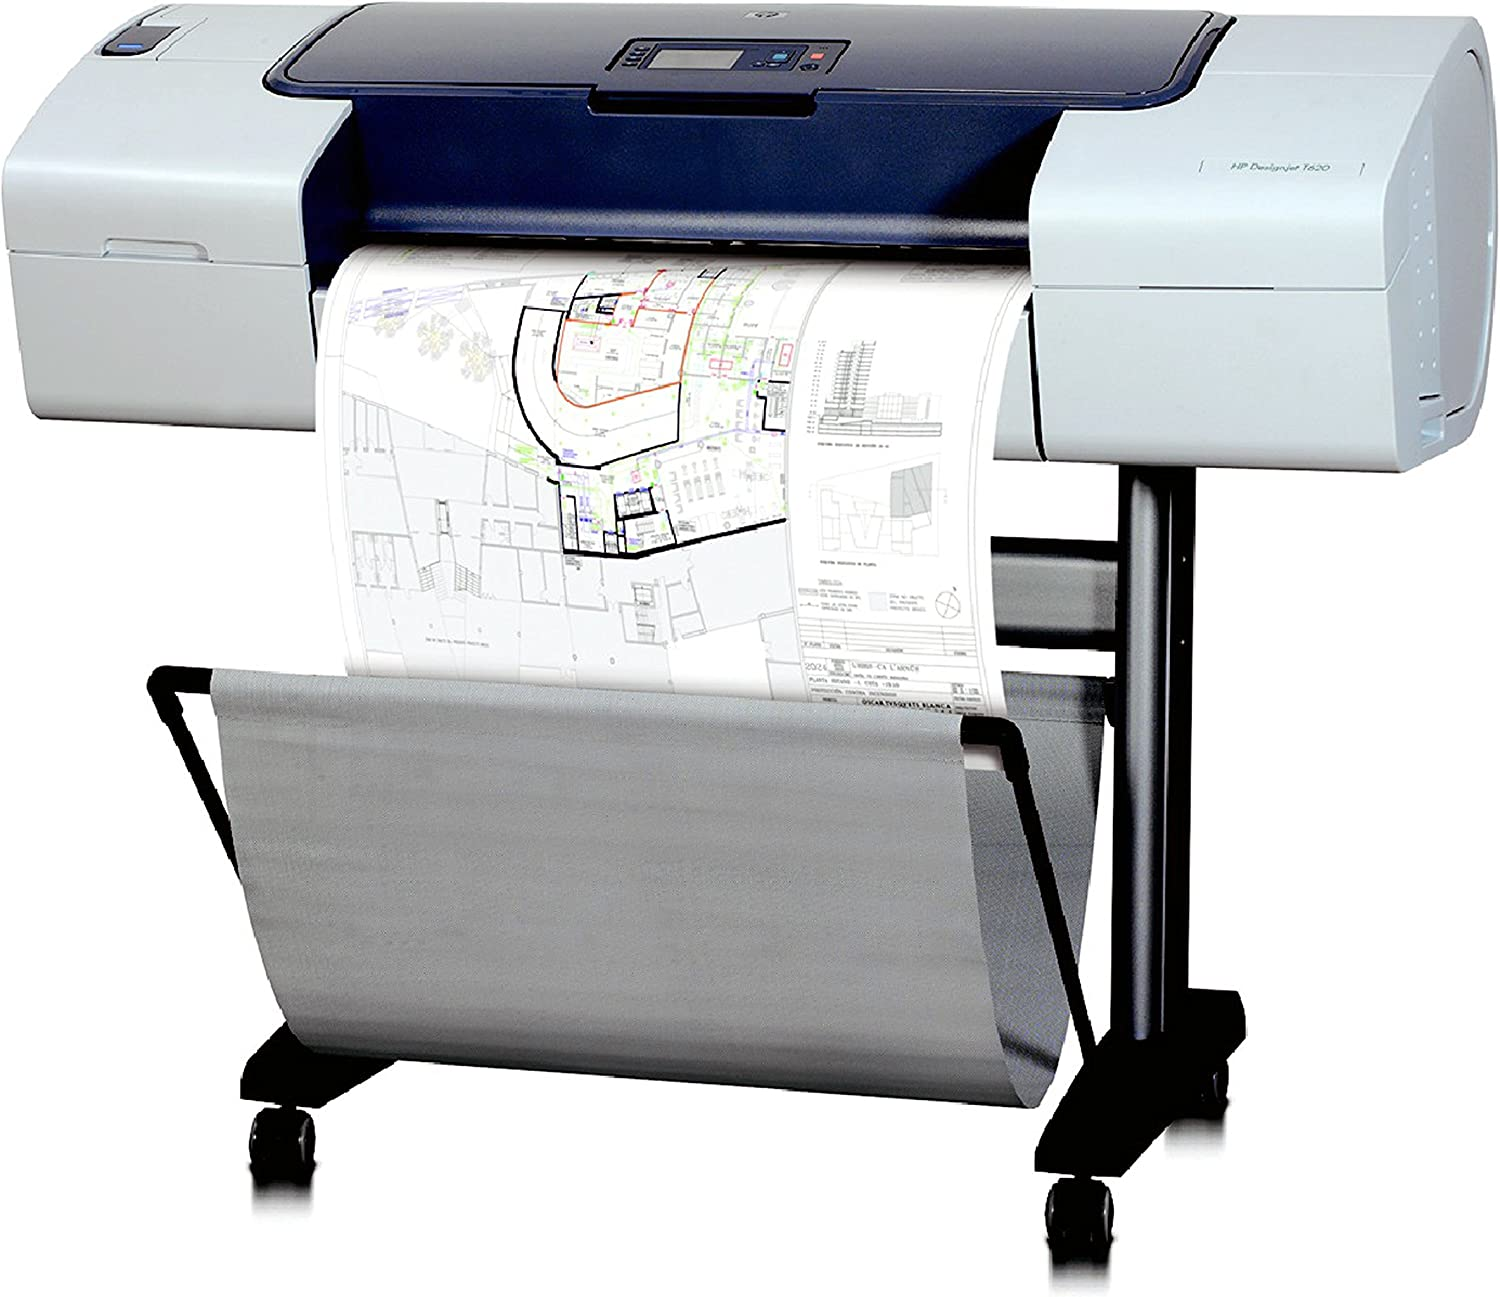 HP Designjet T620 24-in Printer - Impresora de gran formato (HP-GL ...